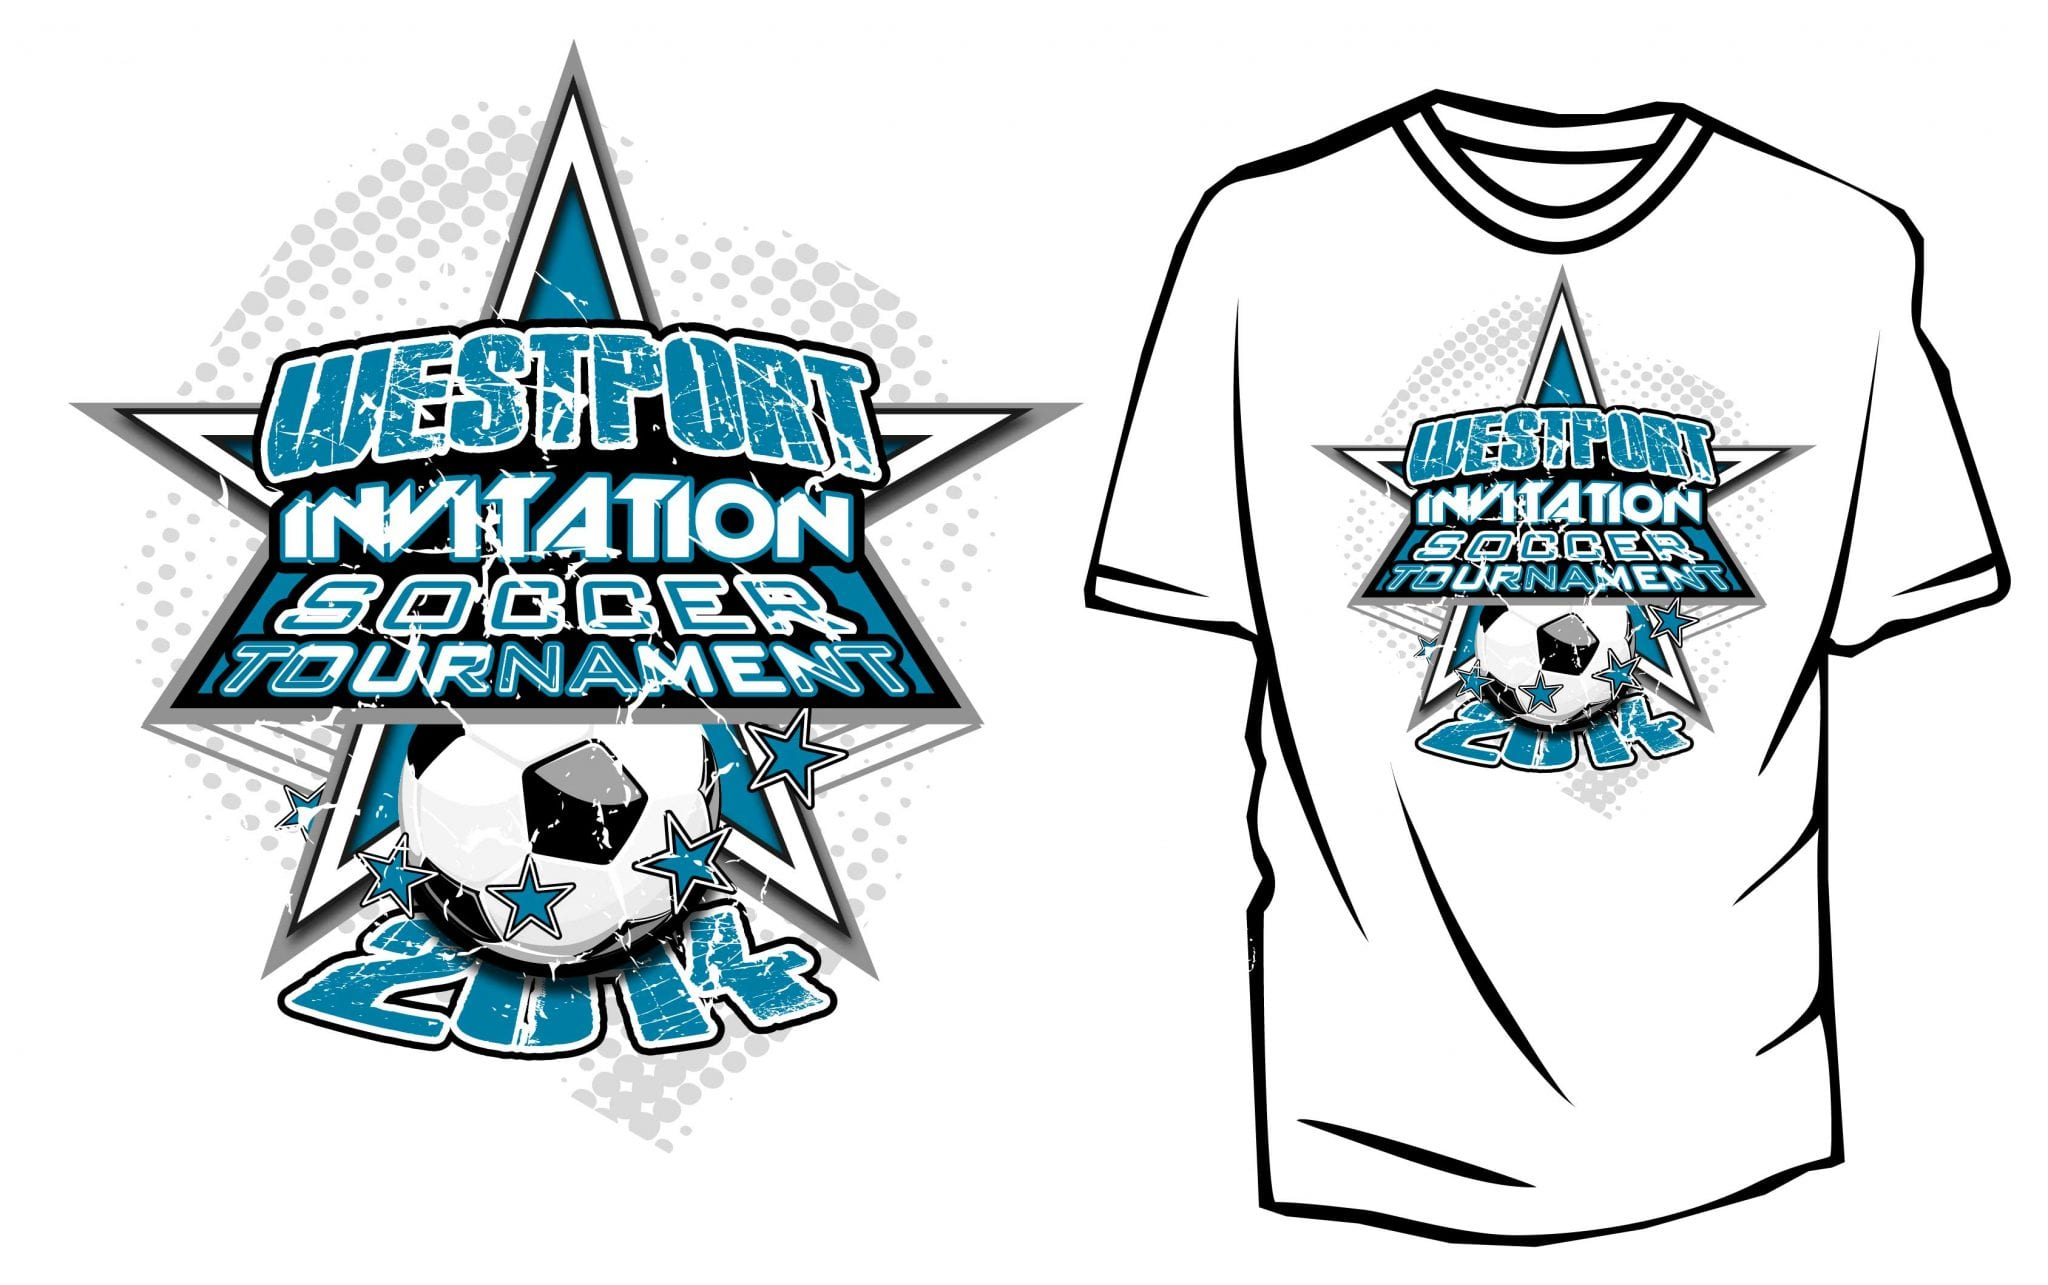 2014 Westport Invitation Soccer Tournament or (WIN2014)